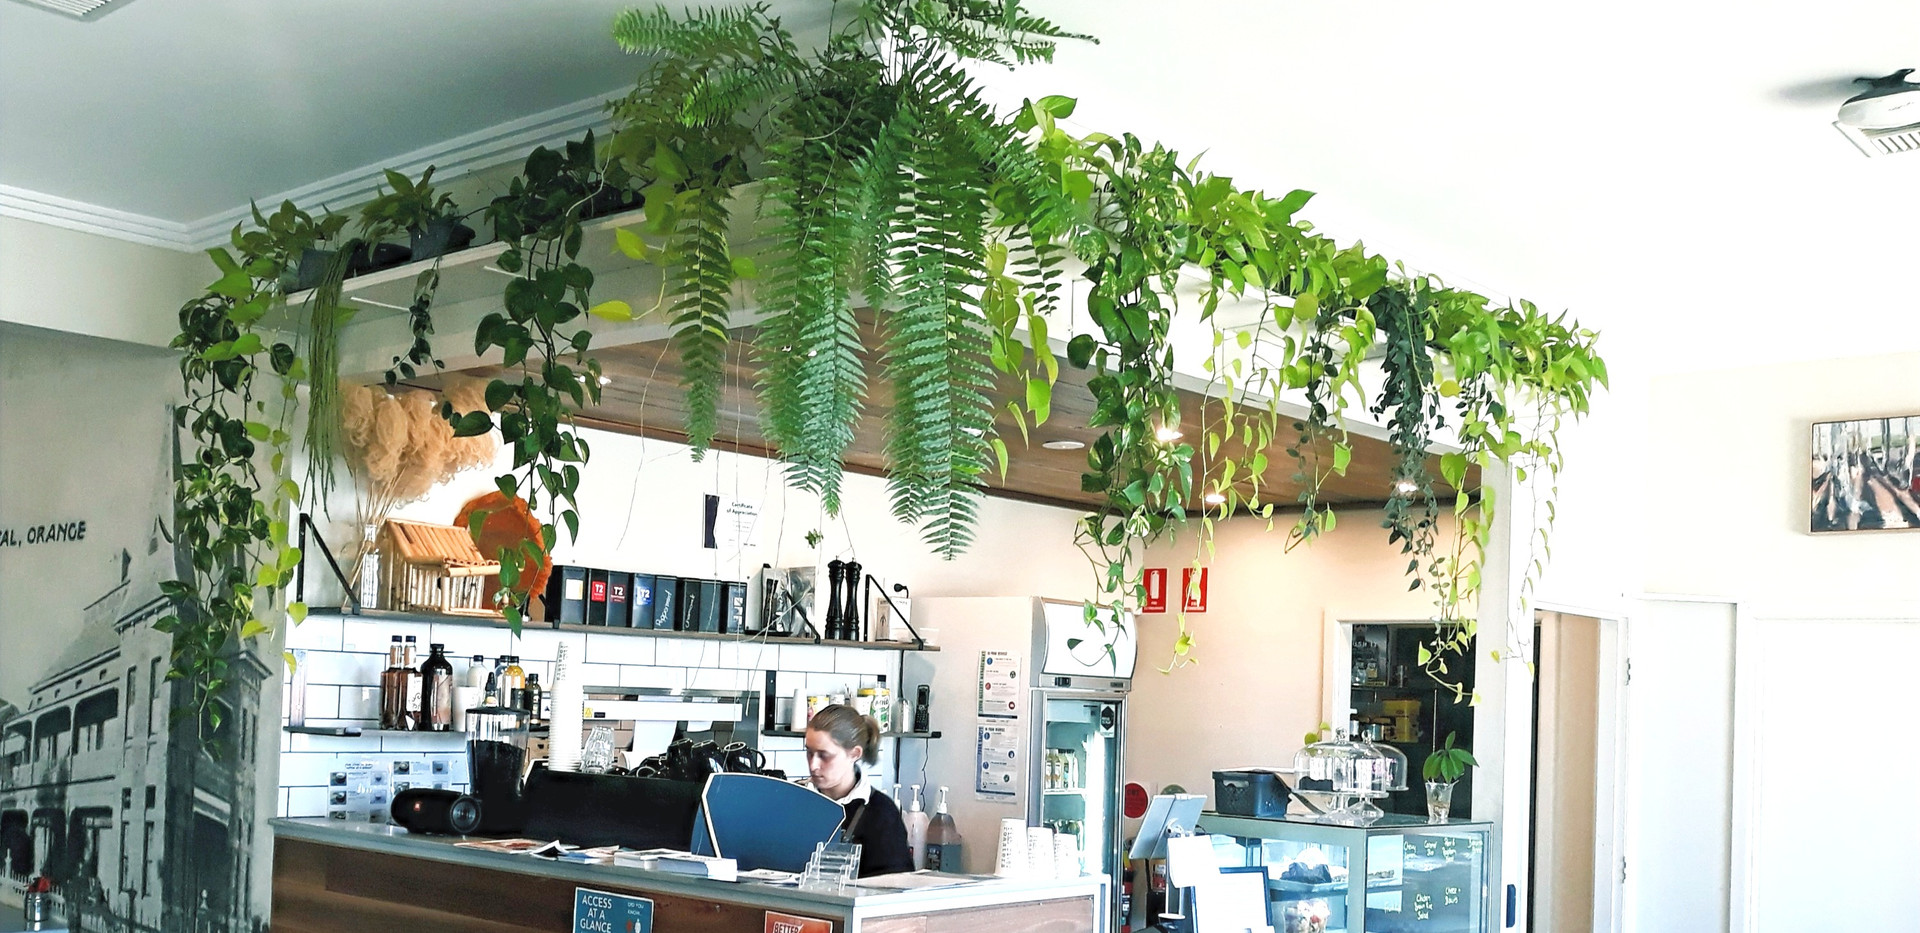 Some greenery with your daily coffee